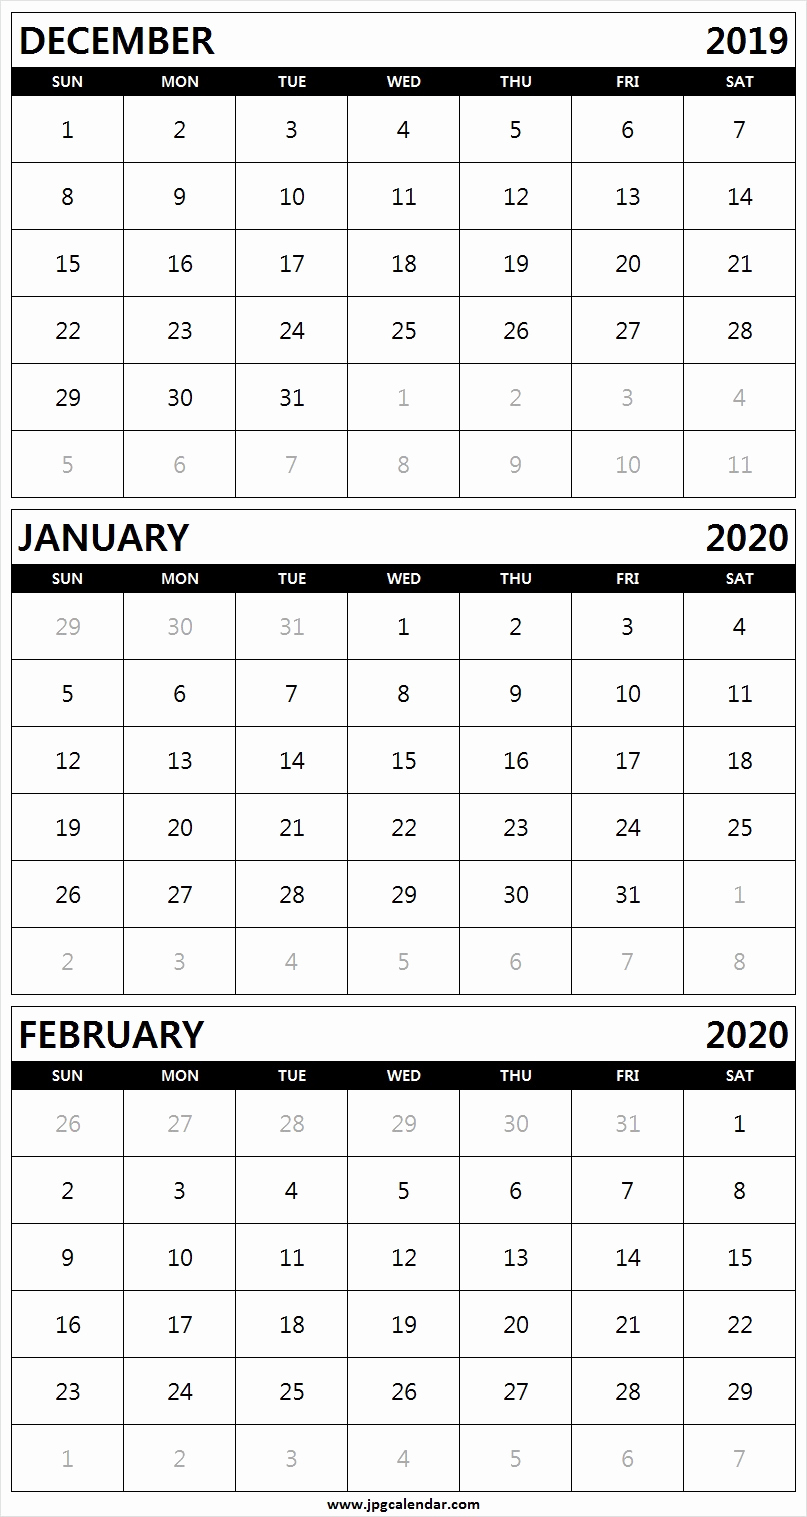 February 2020 Printable Calendar Cute.December January February 2020 Calendar Printable Free Download